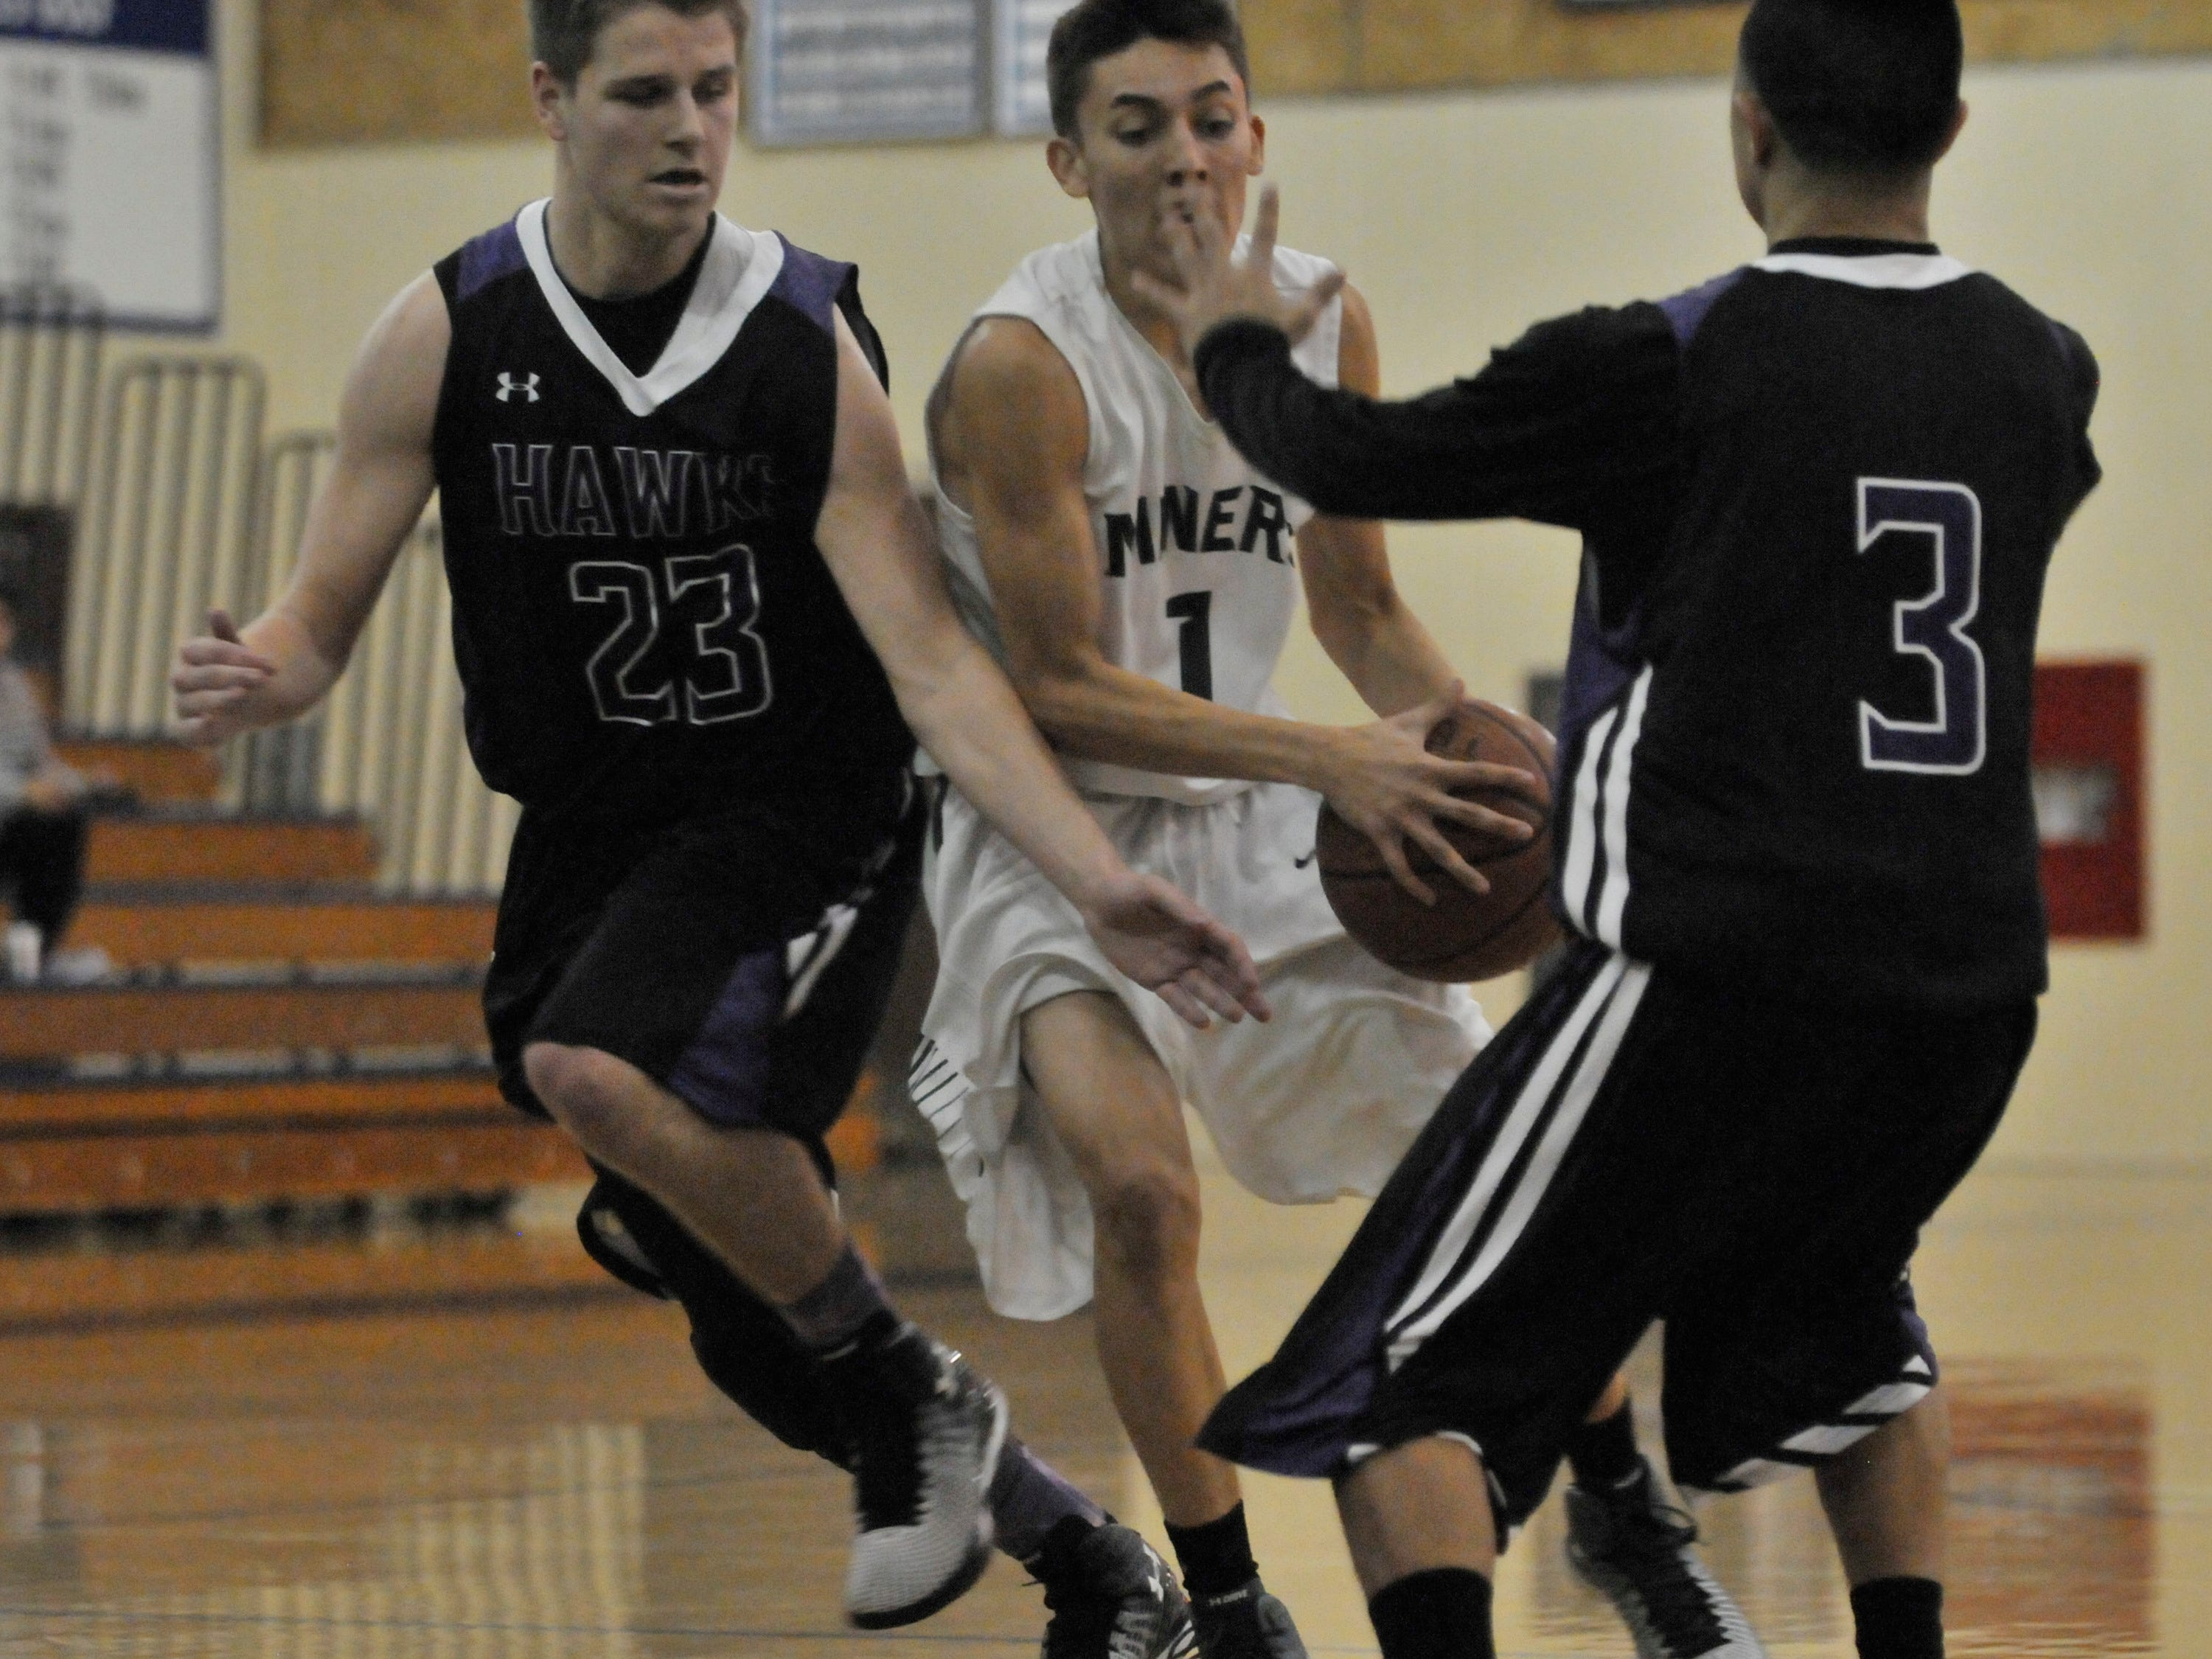 El Diamante's Isaiah Villareal is defended by Mission Oak's Will Shannon (23) and Josh Garcia (3) during a Polly Wilhelmsen Invitational game in December. The Hawks and Miners could meet in Friday's Division II quarterfinals.